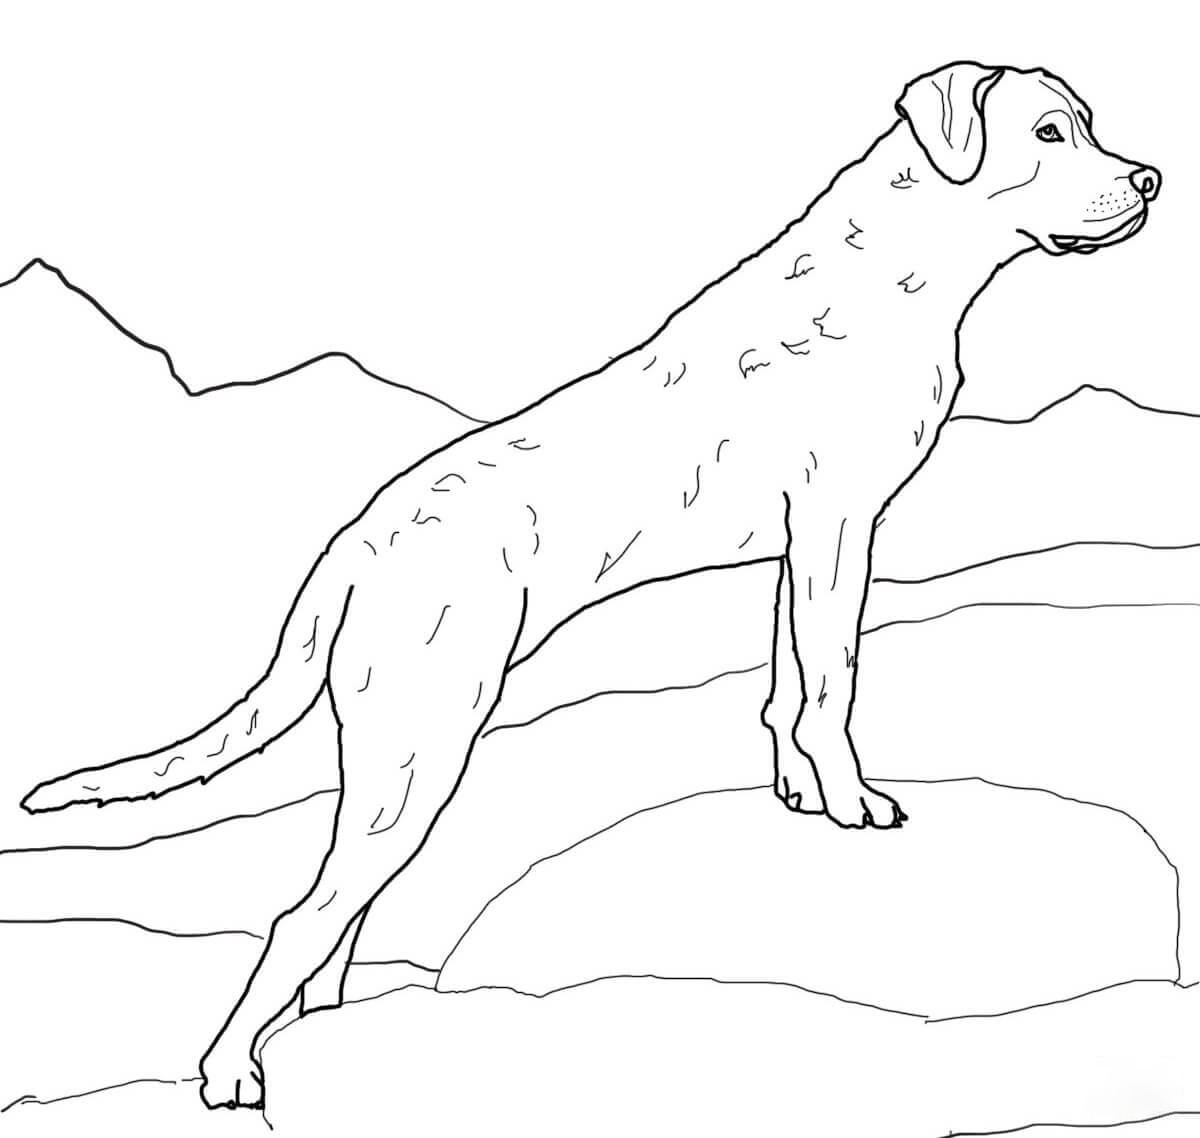 Chesapeake-bay Coloring Page